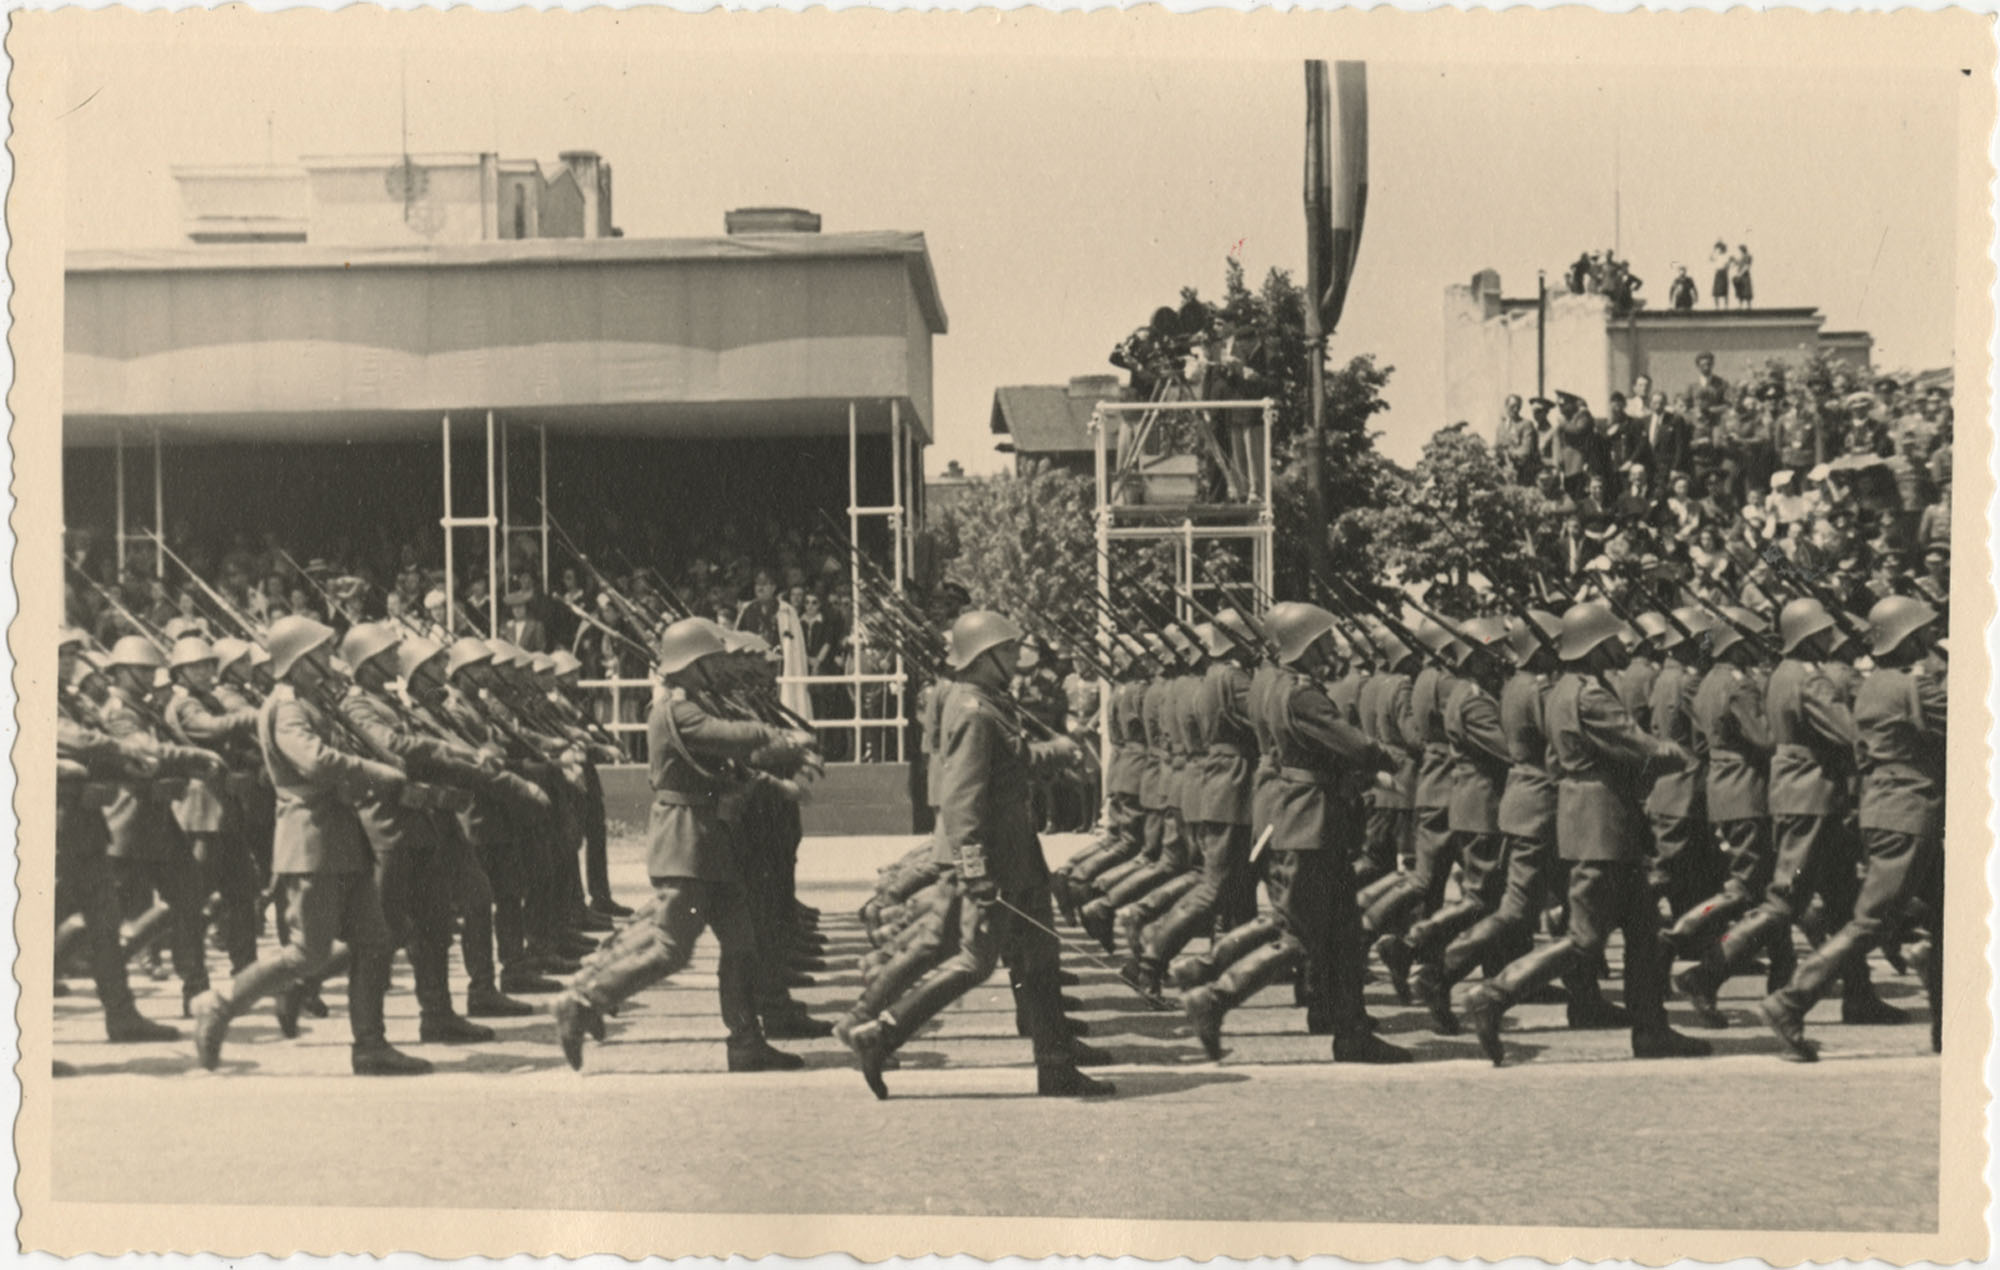 Soldiers marching in a military ceremony